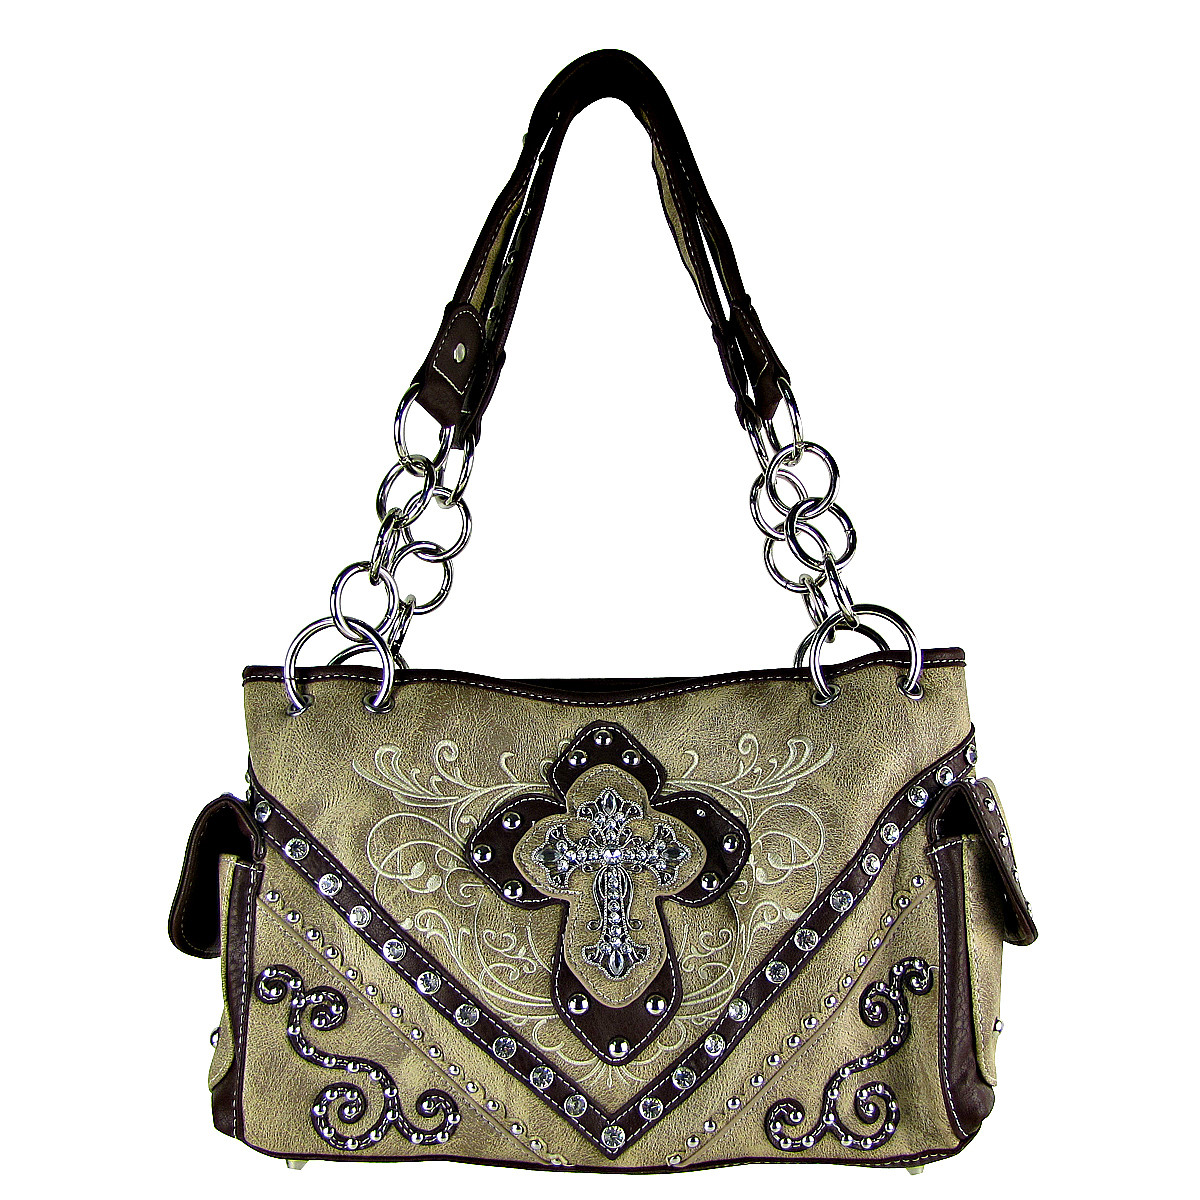 BEIGE WESTERN STITCH CROSS CONCEALED CARRY LOOK SHOULDER HANDBAG HB1-CHF0031BEI